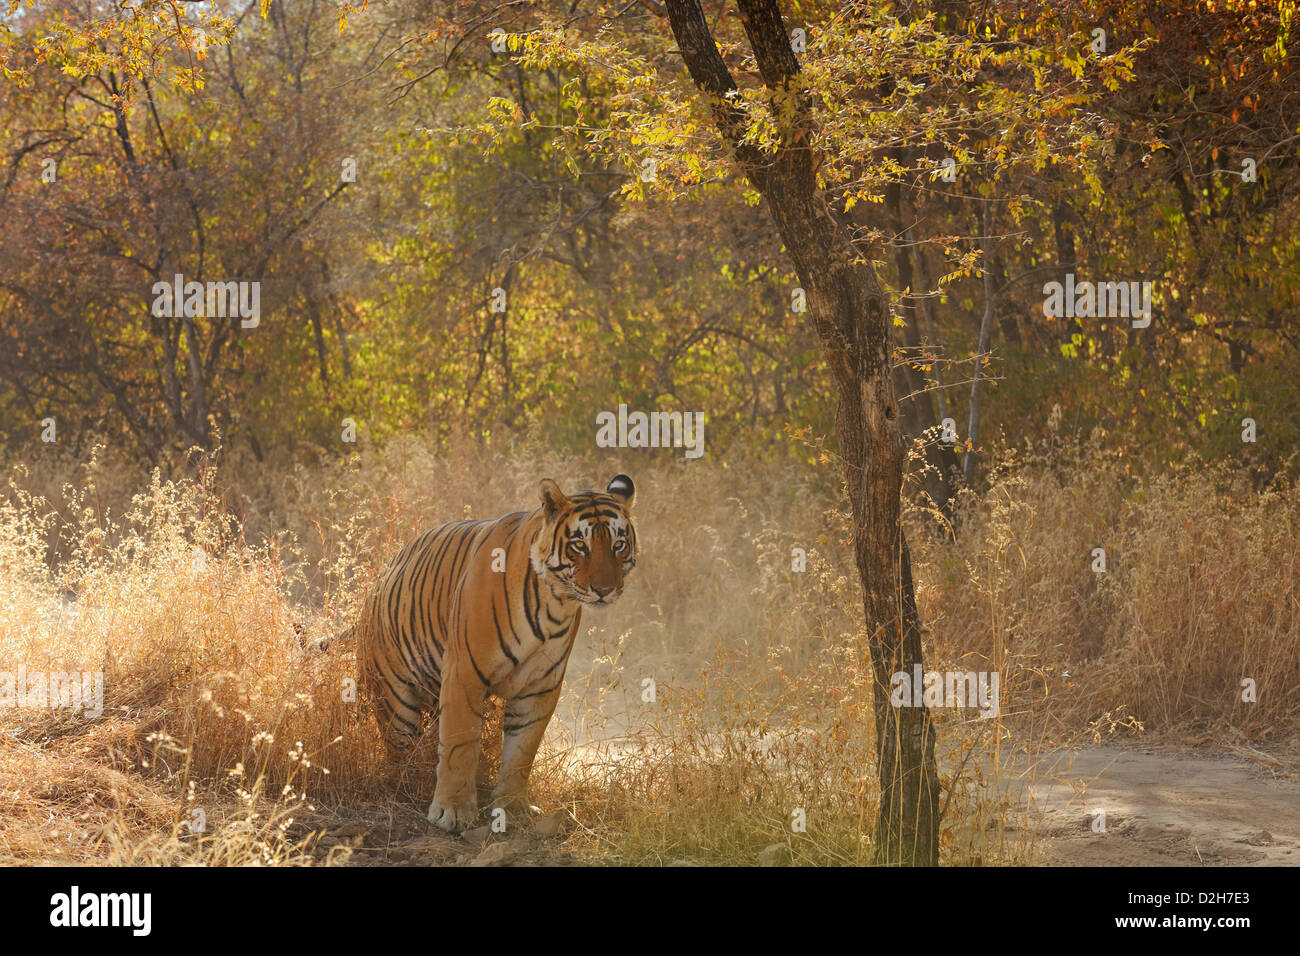 Tiger in the dry grasses of Ranthambore tiger reserve - Stock Image